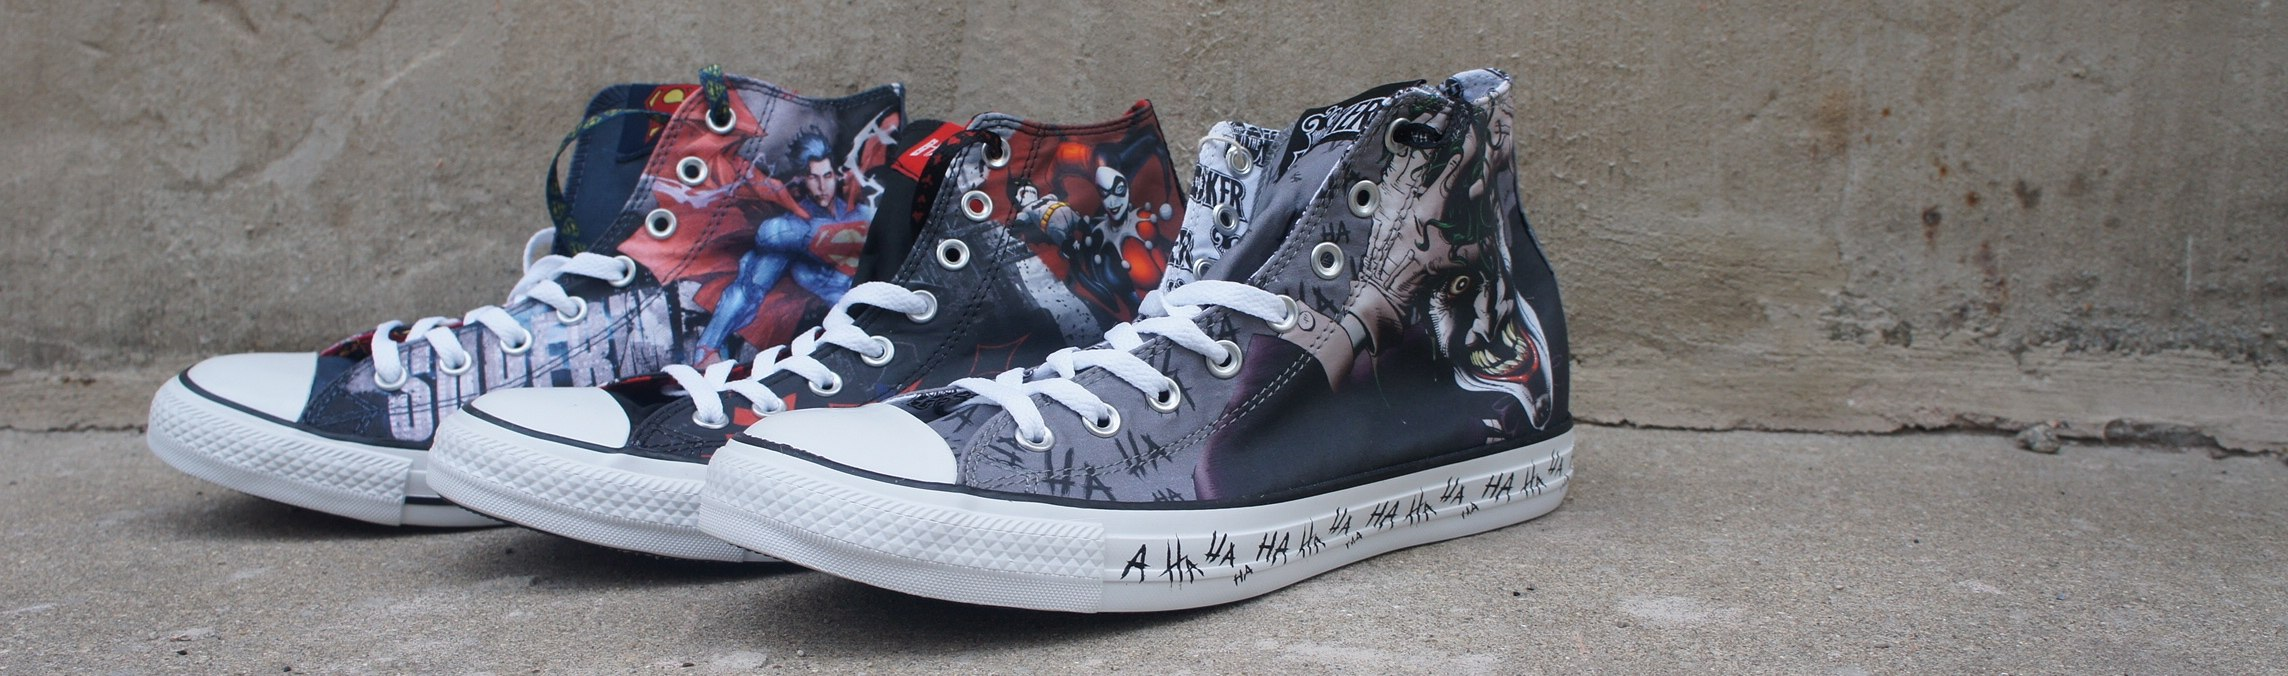 Converse DC Comics Shoes Collection Latest Releases